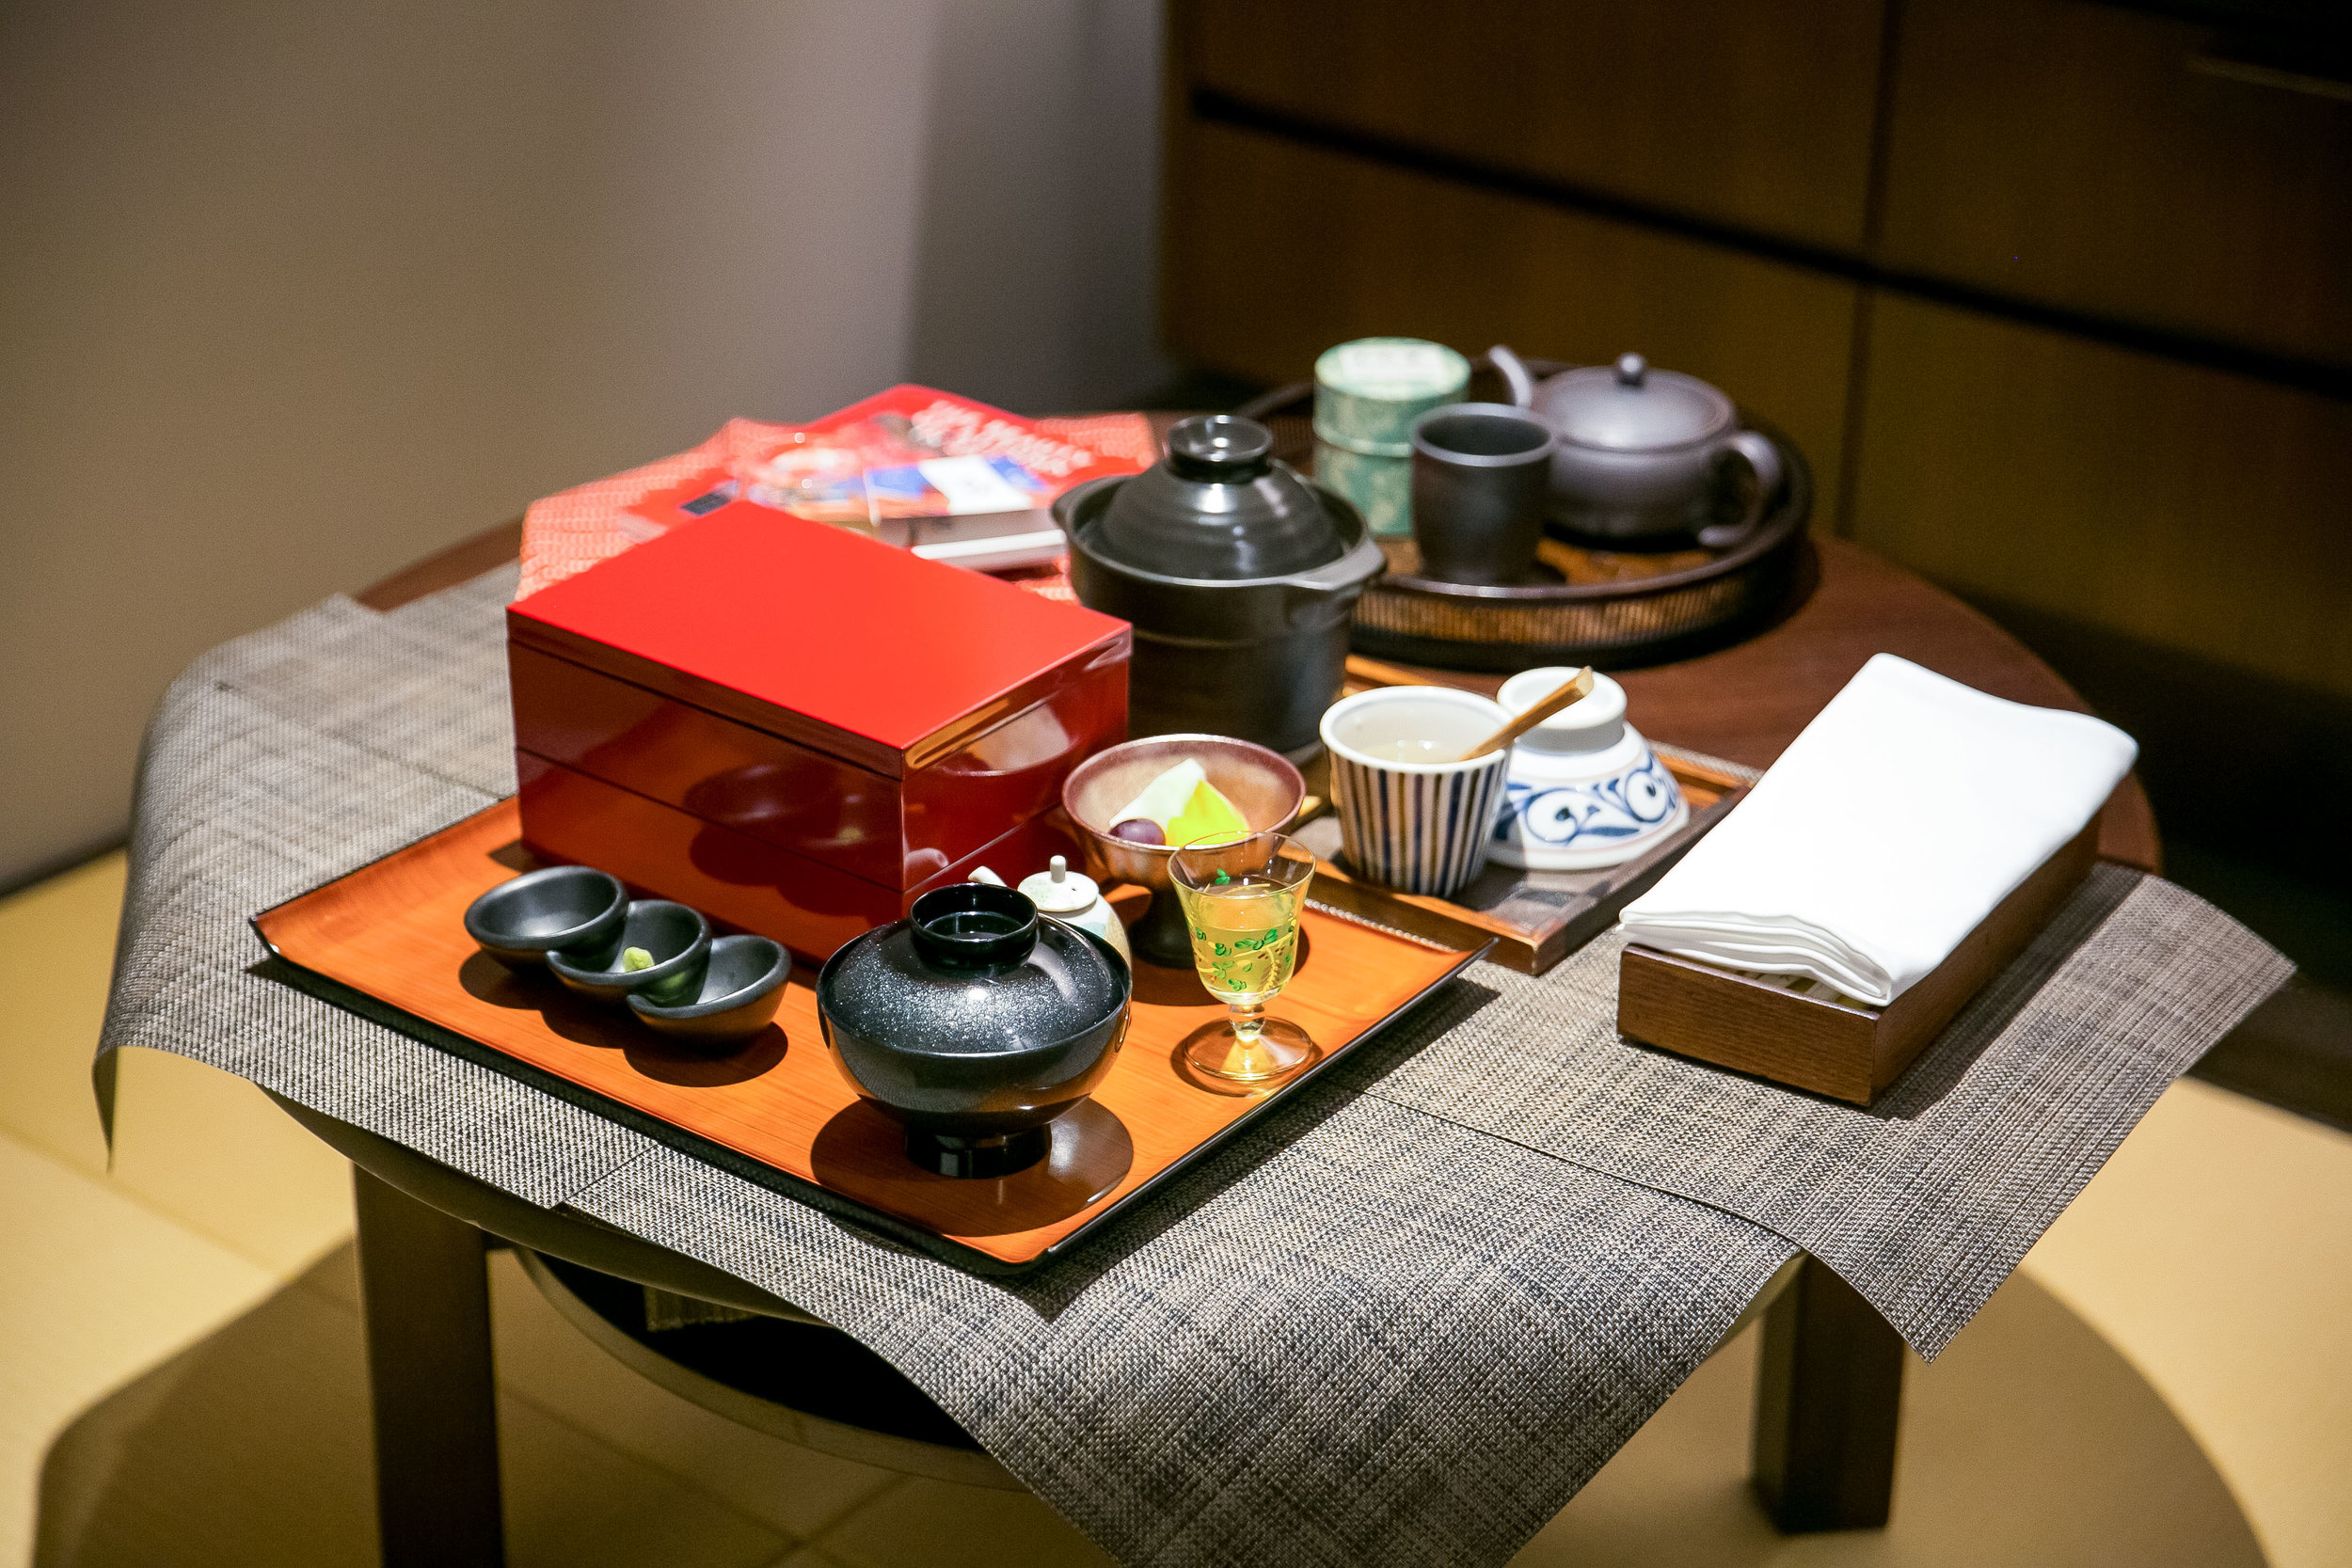 My breakfast set up at Hotel Ryumeikan in Tokyo